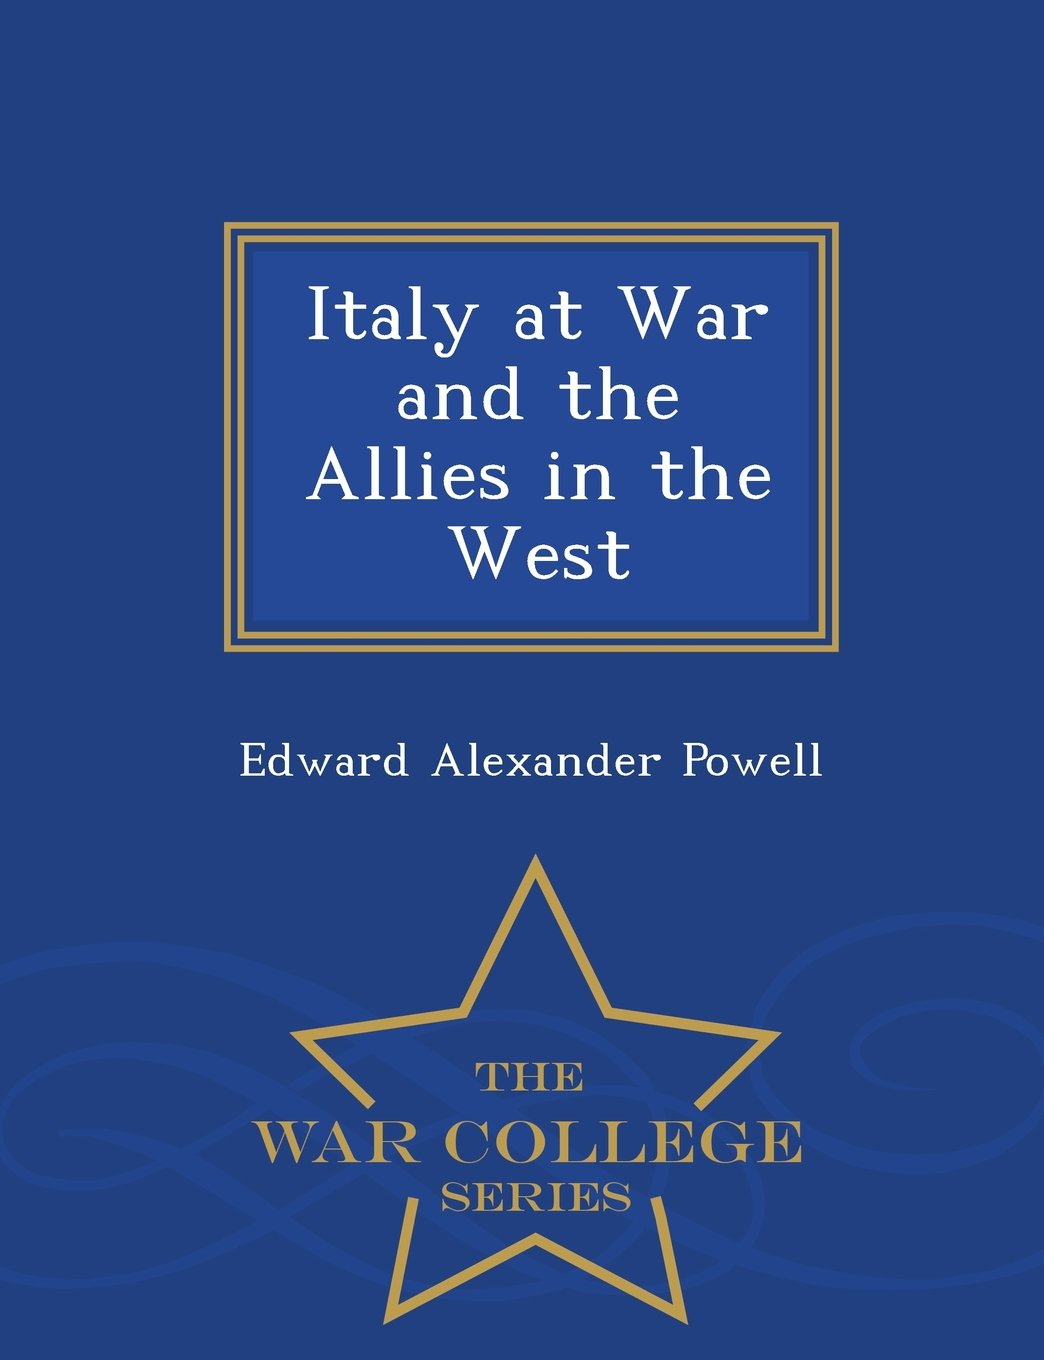 Download Italy at War and the Allies in the West - War College Series PDF